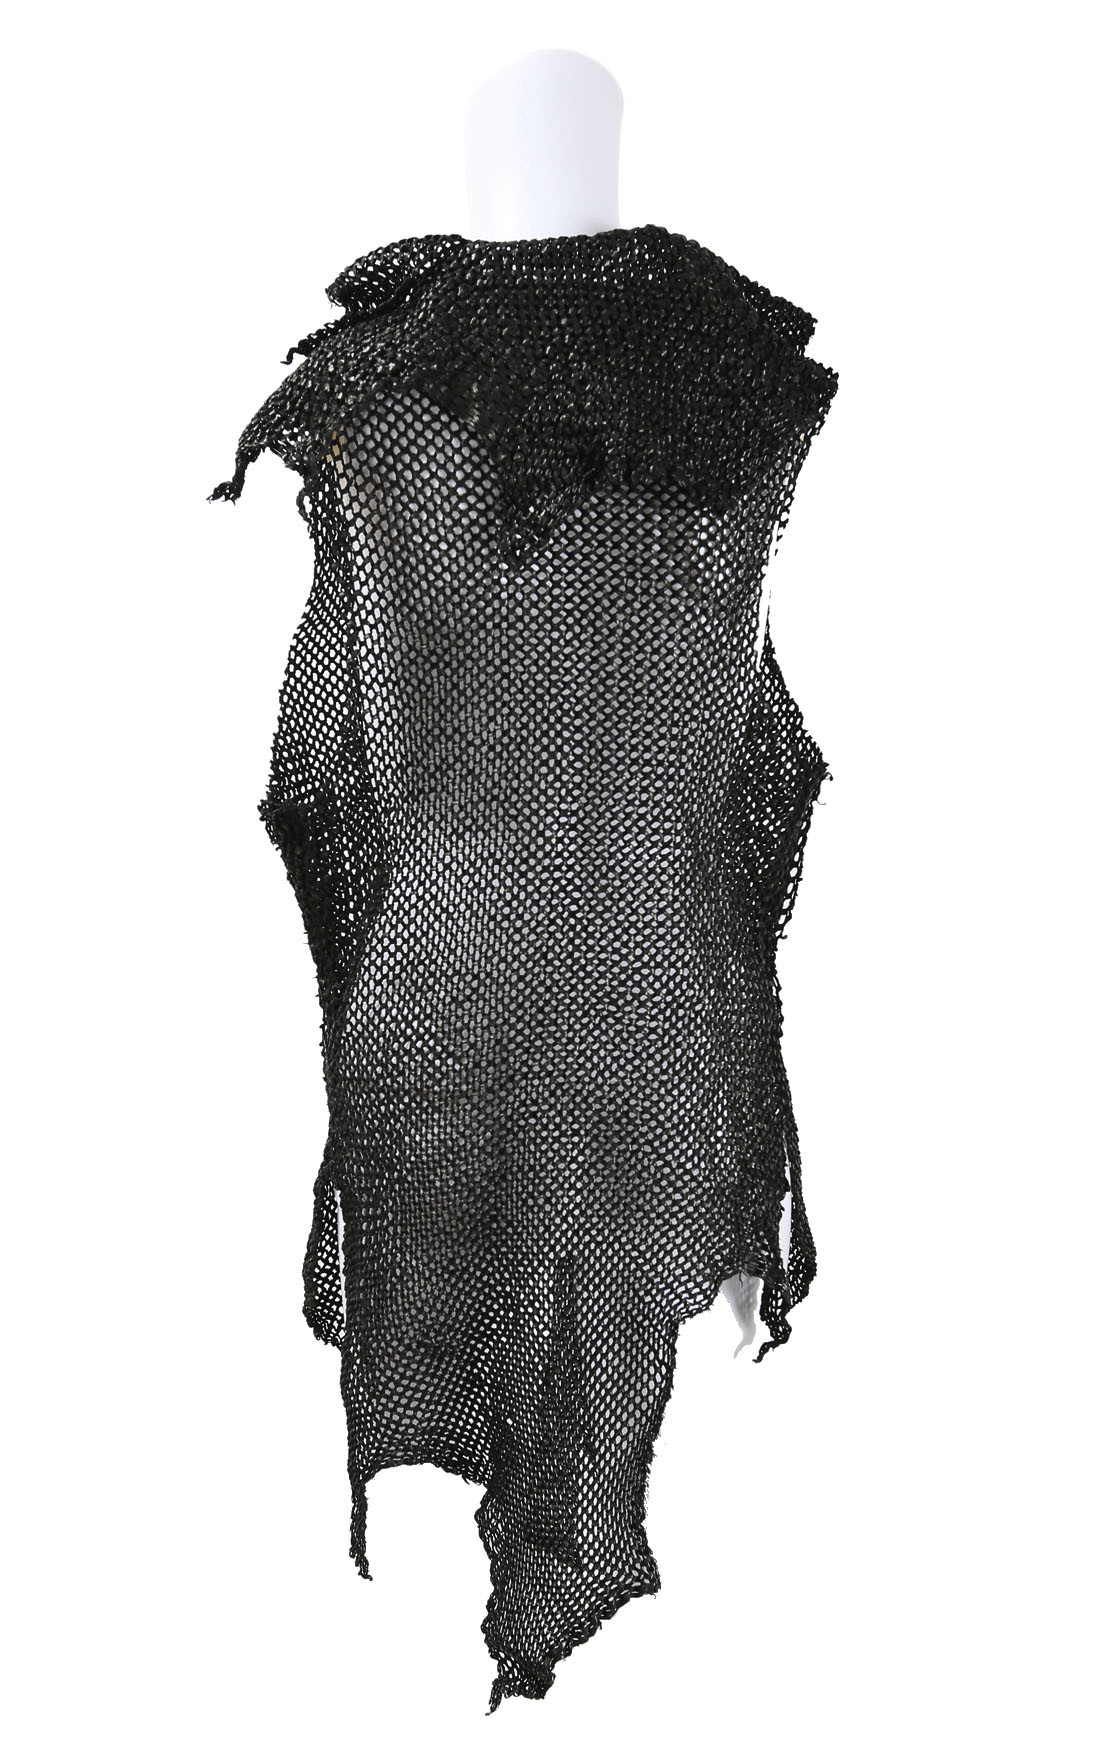 Claudio Cutuli - Black Lasered Leather Gilet with Buttons (LOISE-1)